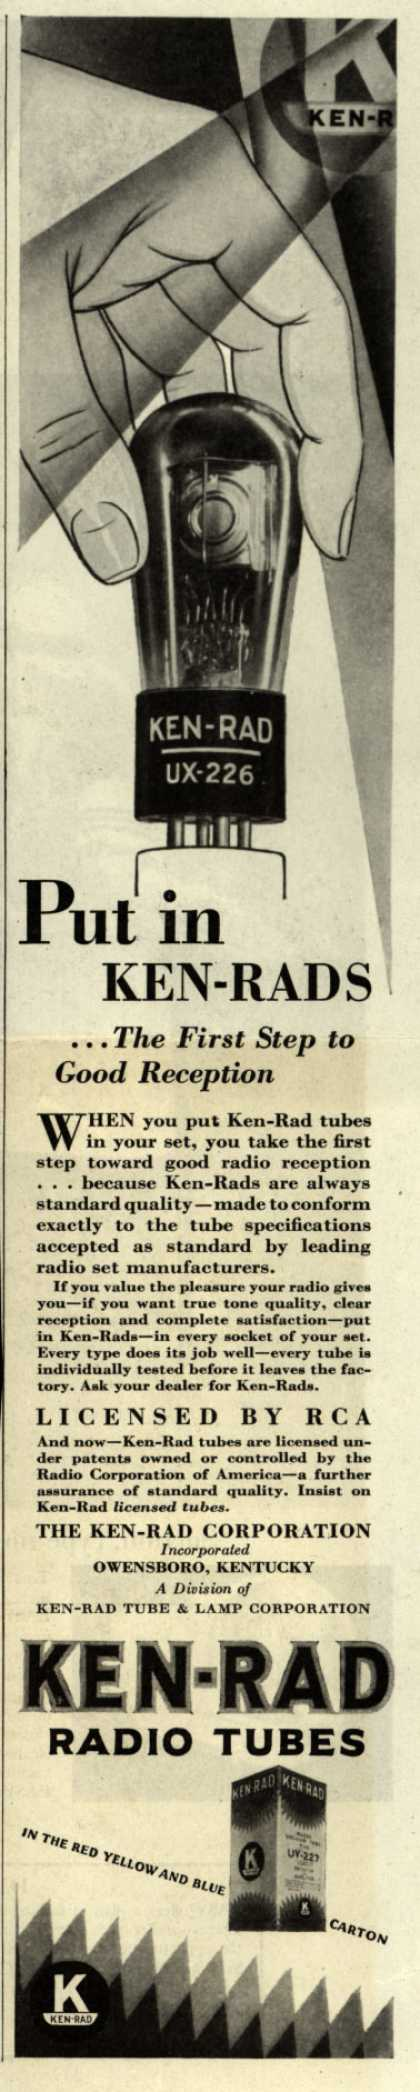 Ken-Rad Radio Tube's Radio Tubes – Put in KEN-RADS... The First Step to Good Reception (1929)